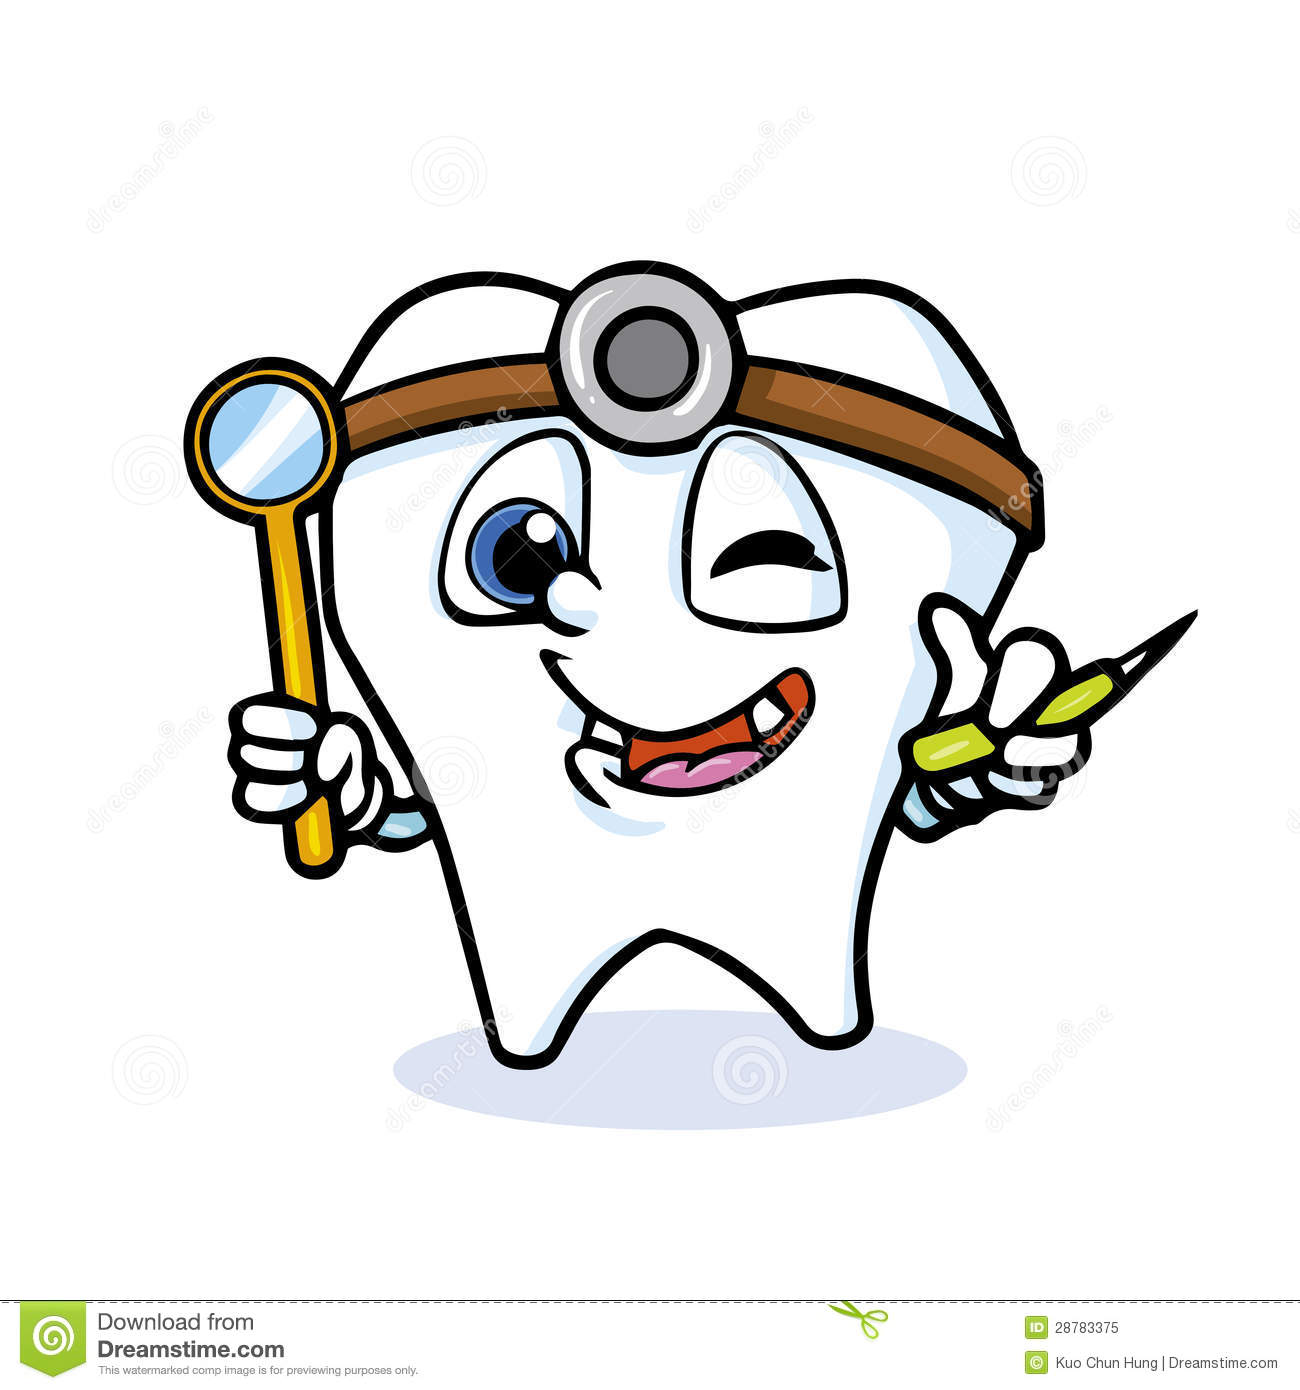 Funny cartoon teeth dental picture - Funny dental pictures cartoons ...